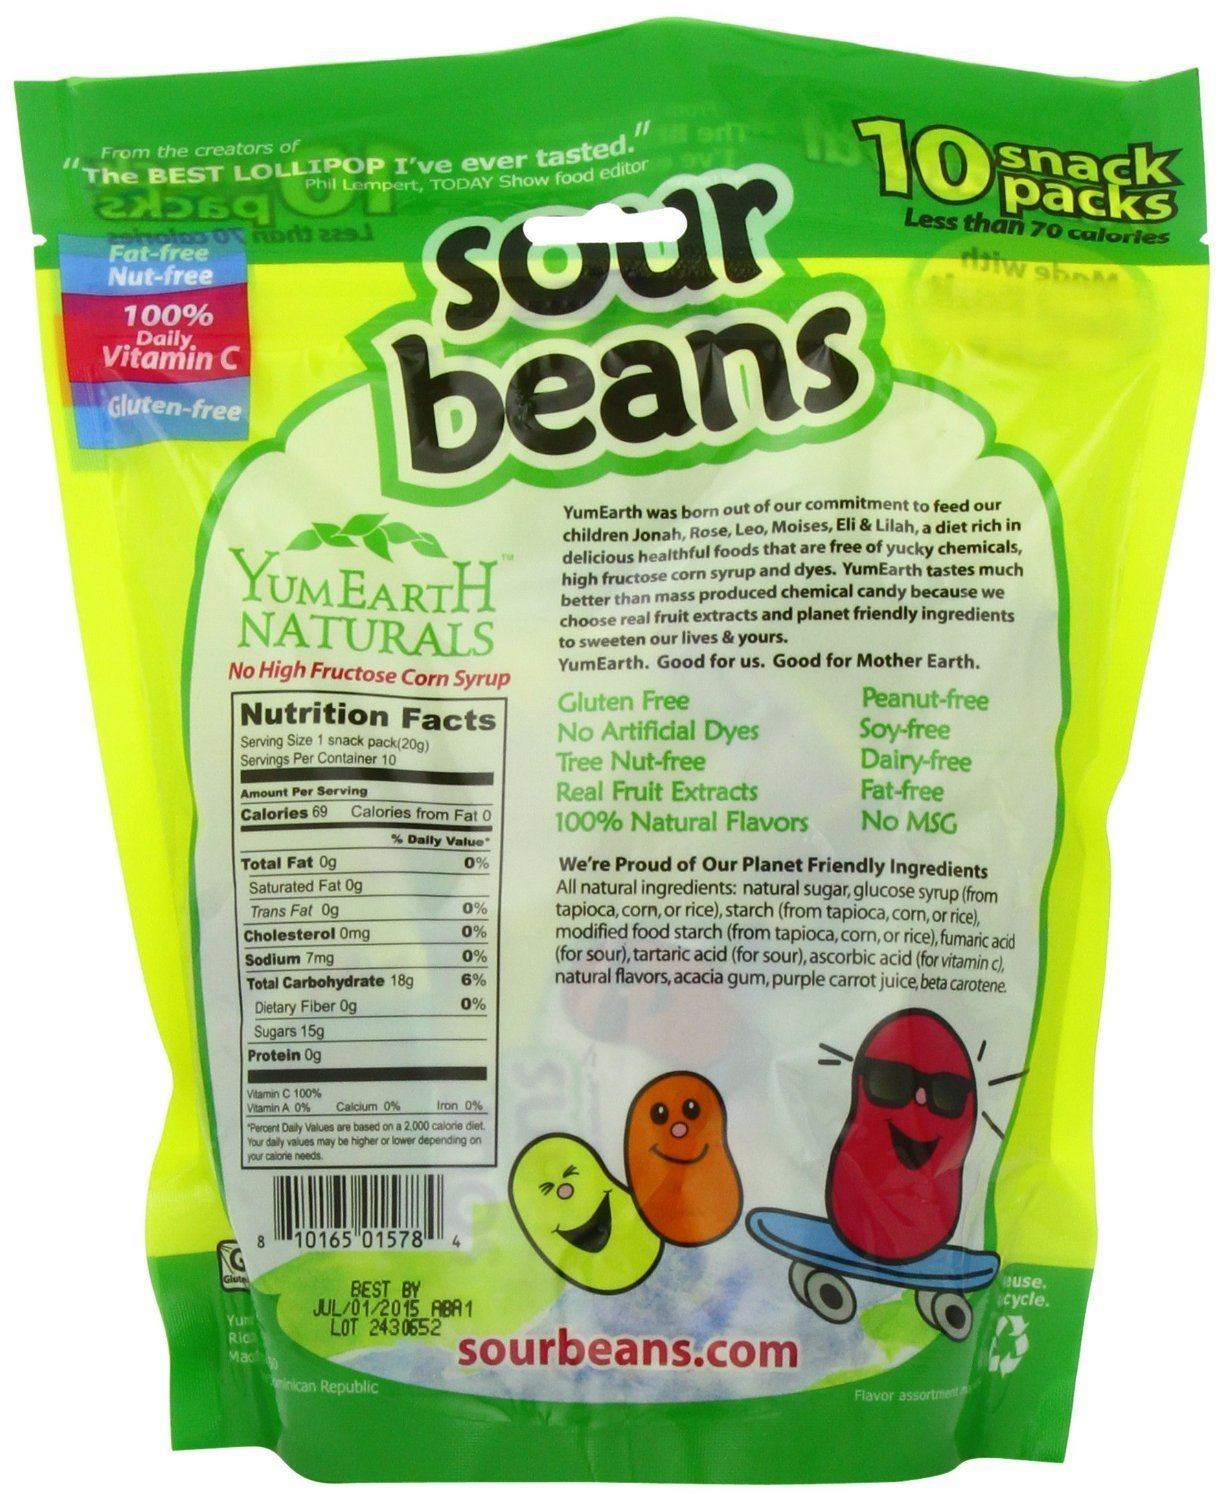 YumEarth Naturals Sour Jelly Beans 10 Snack Packs, 20 g Each (2 Pack)